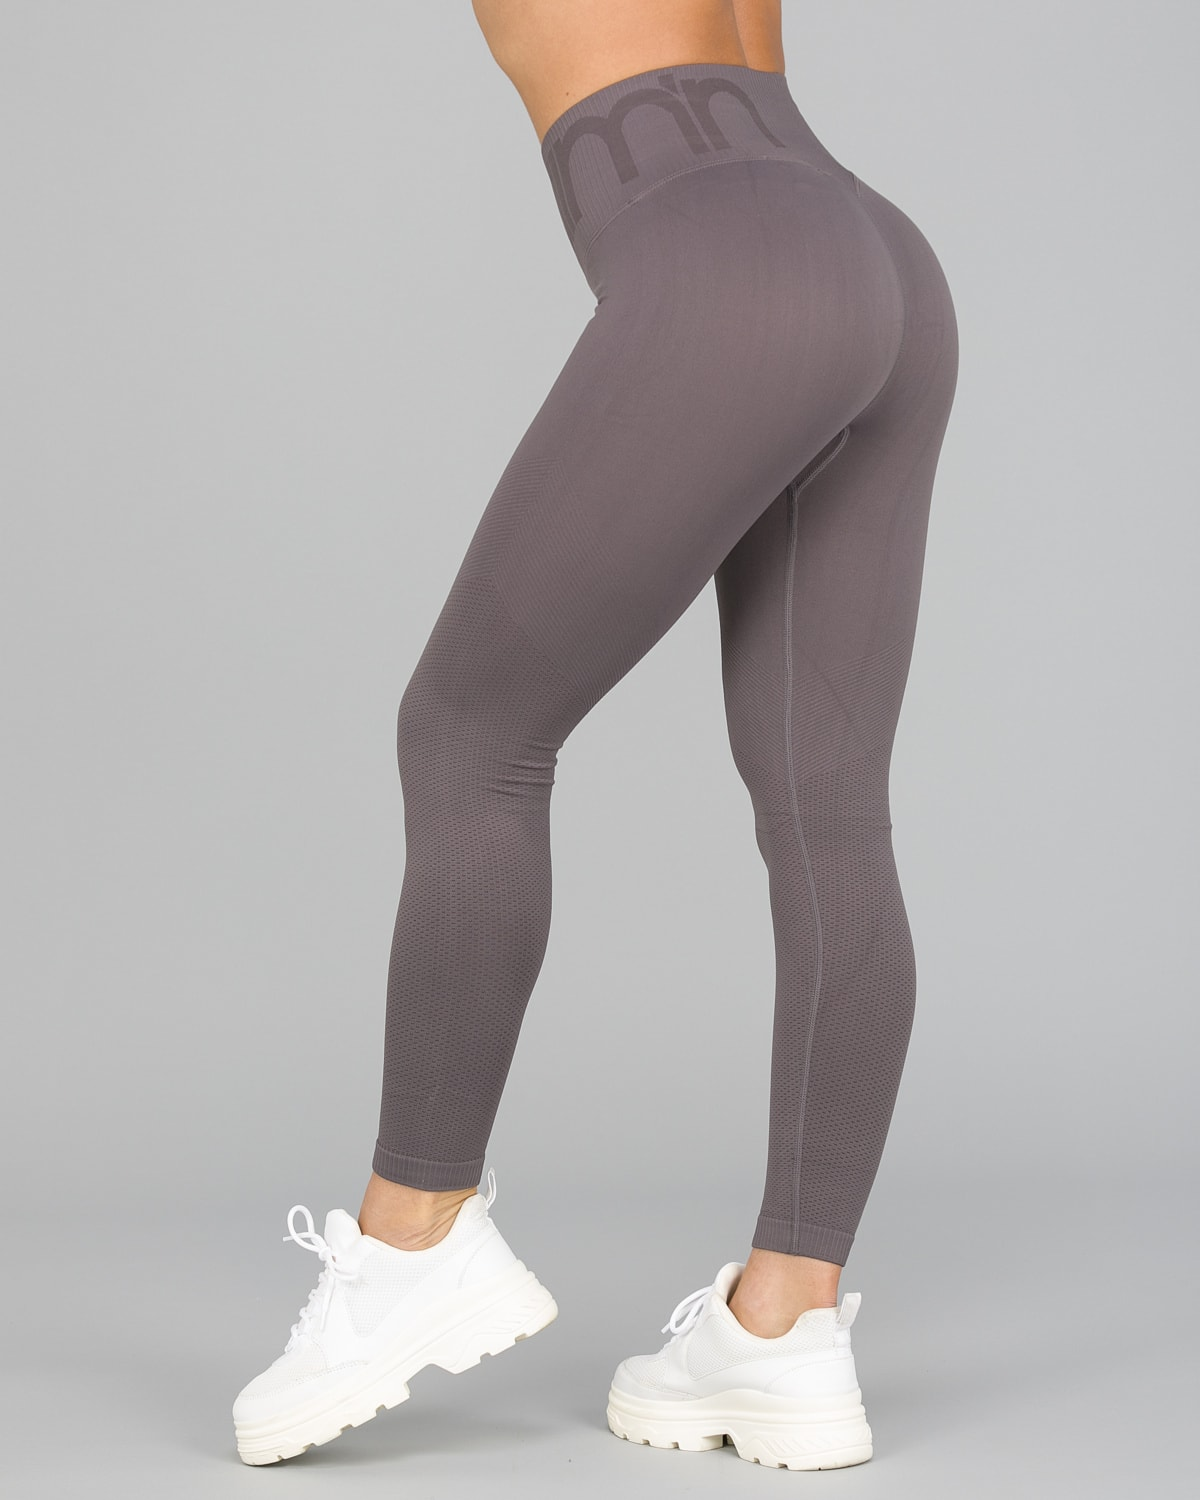 Aim'n Concrete Attention Seamless Tights8